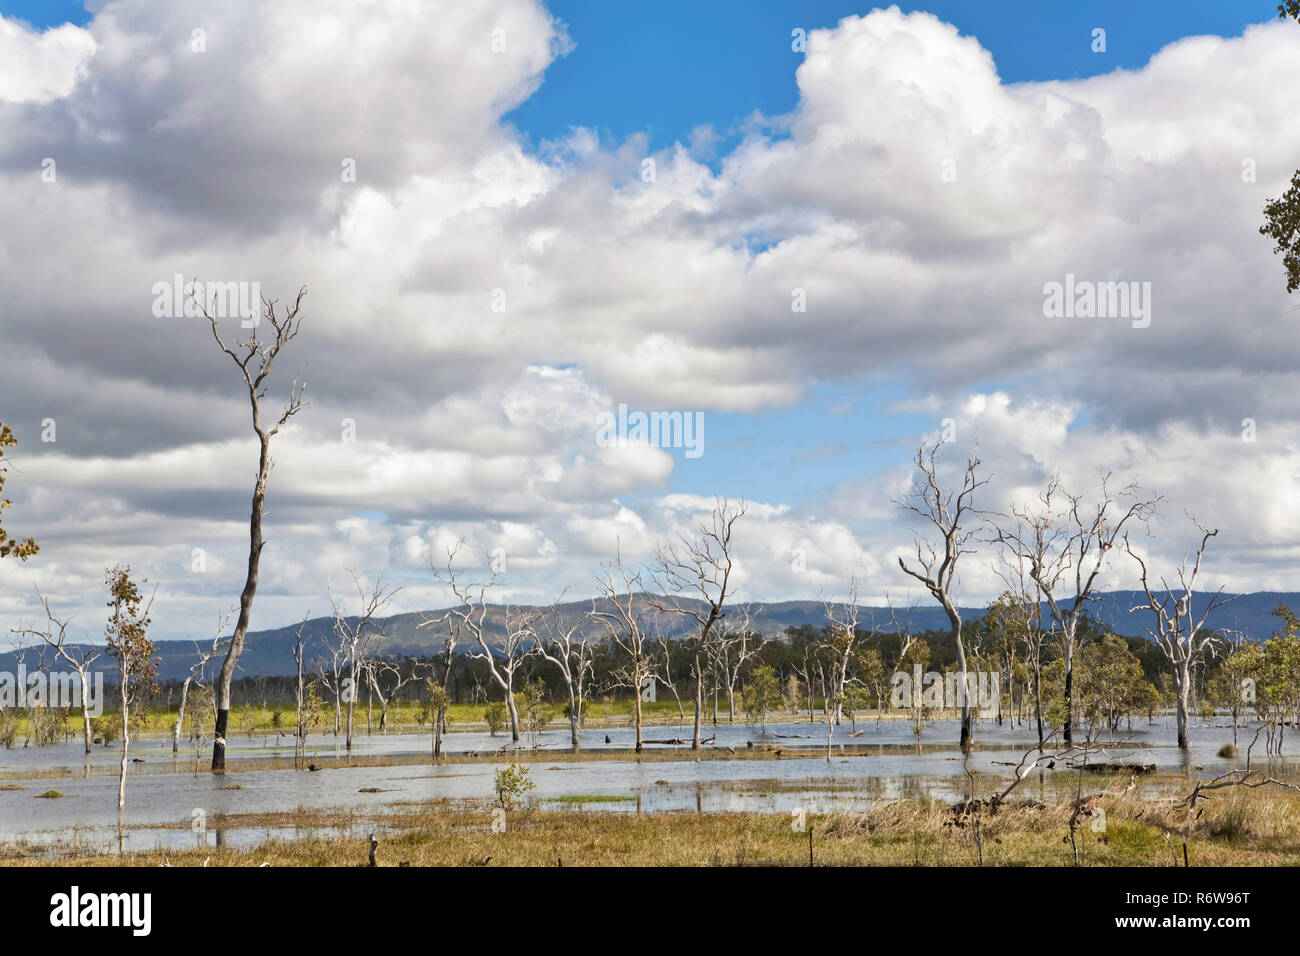 Trees that have died due to flooding, Cairns, Queensland, Australia. - Stock Image